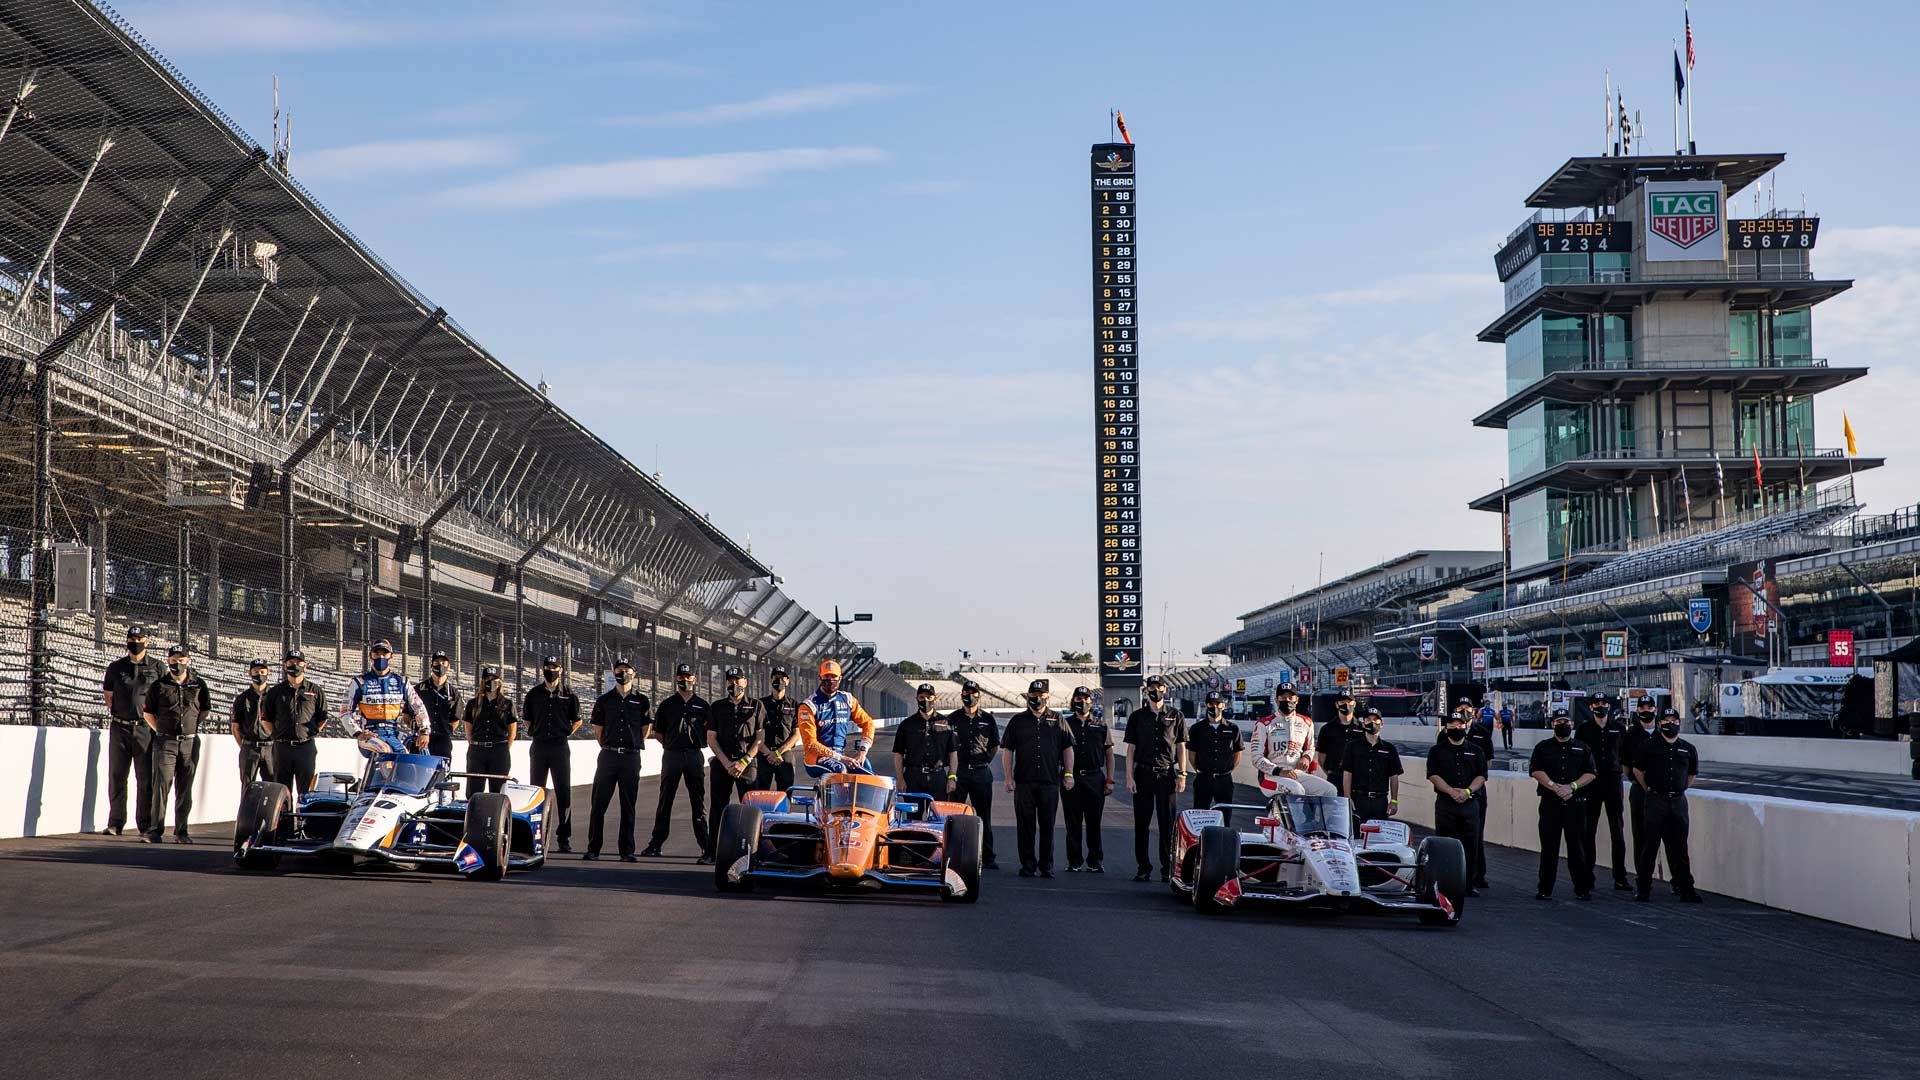 How to watch the 2020 Indy 500 race live in the UK